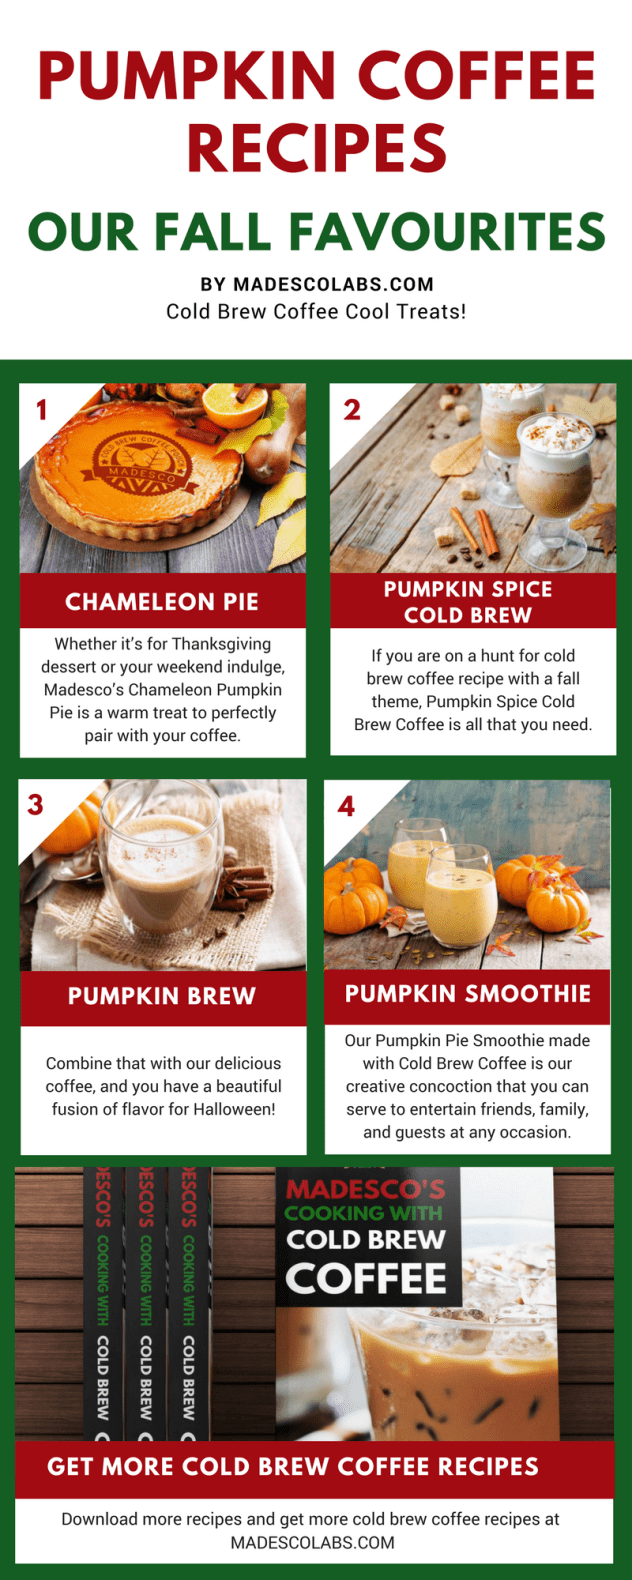 infographic - Pumpkin Coffee Recipes MadescoLabs.com